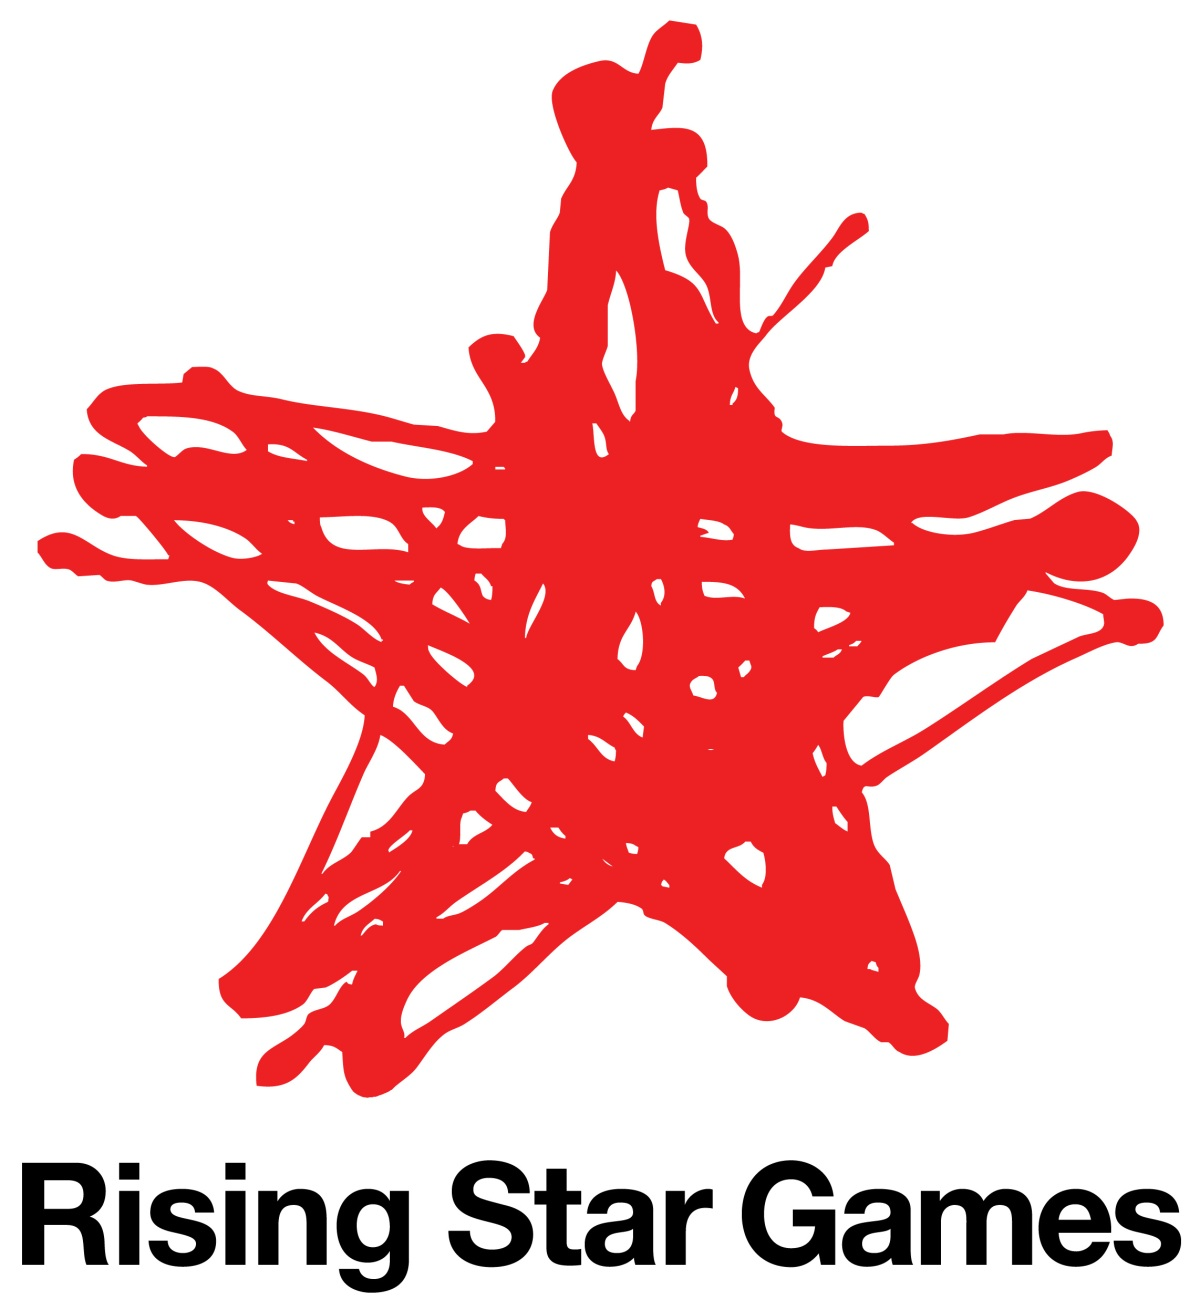 Rising Star Games Teasing New JRPG Next Week